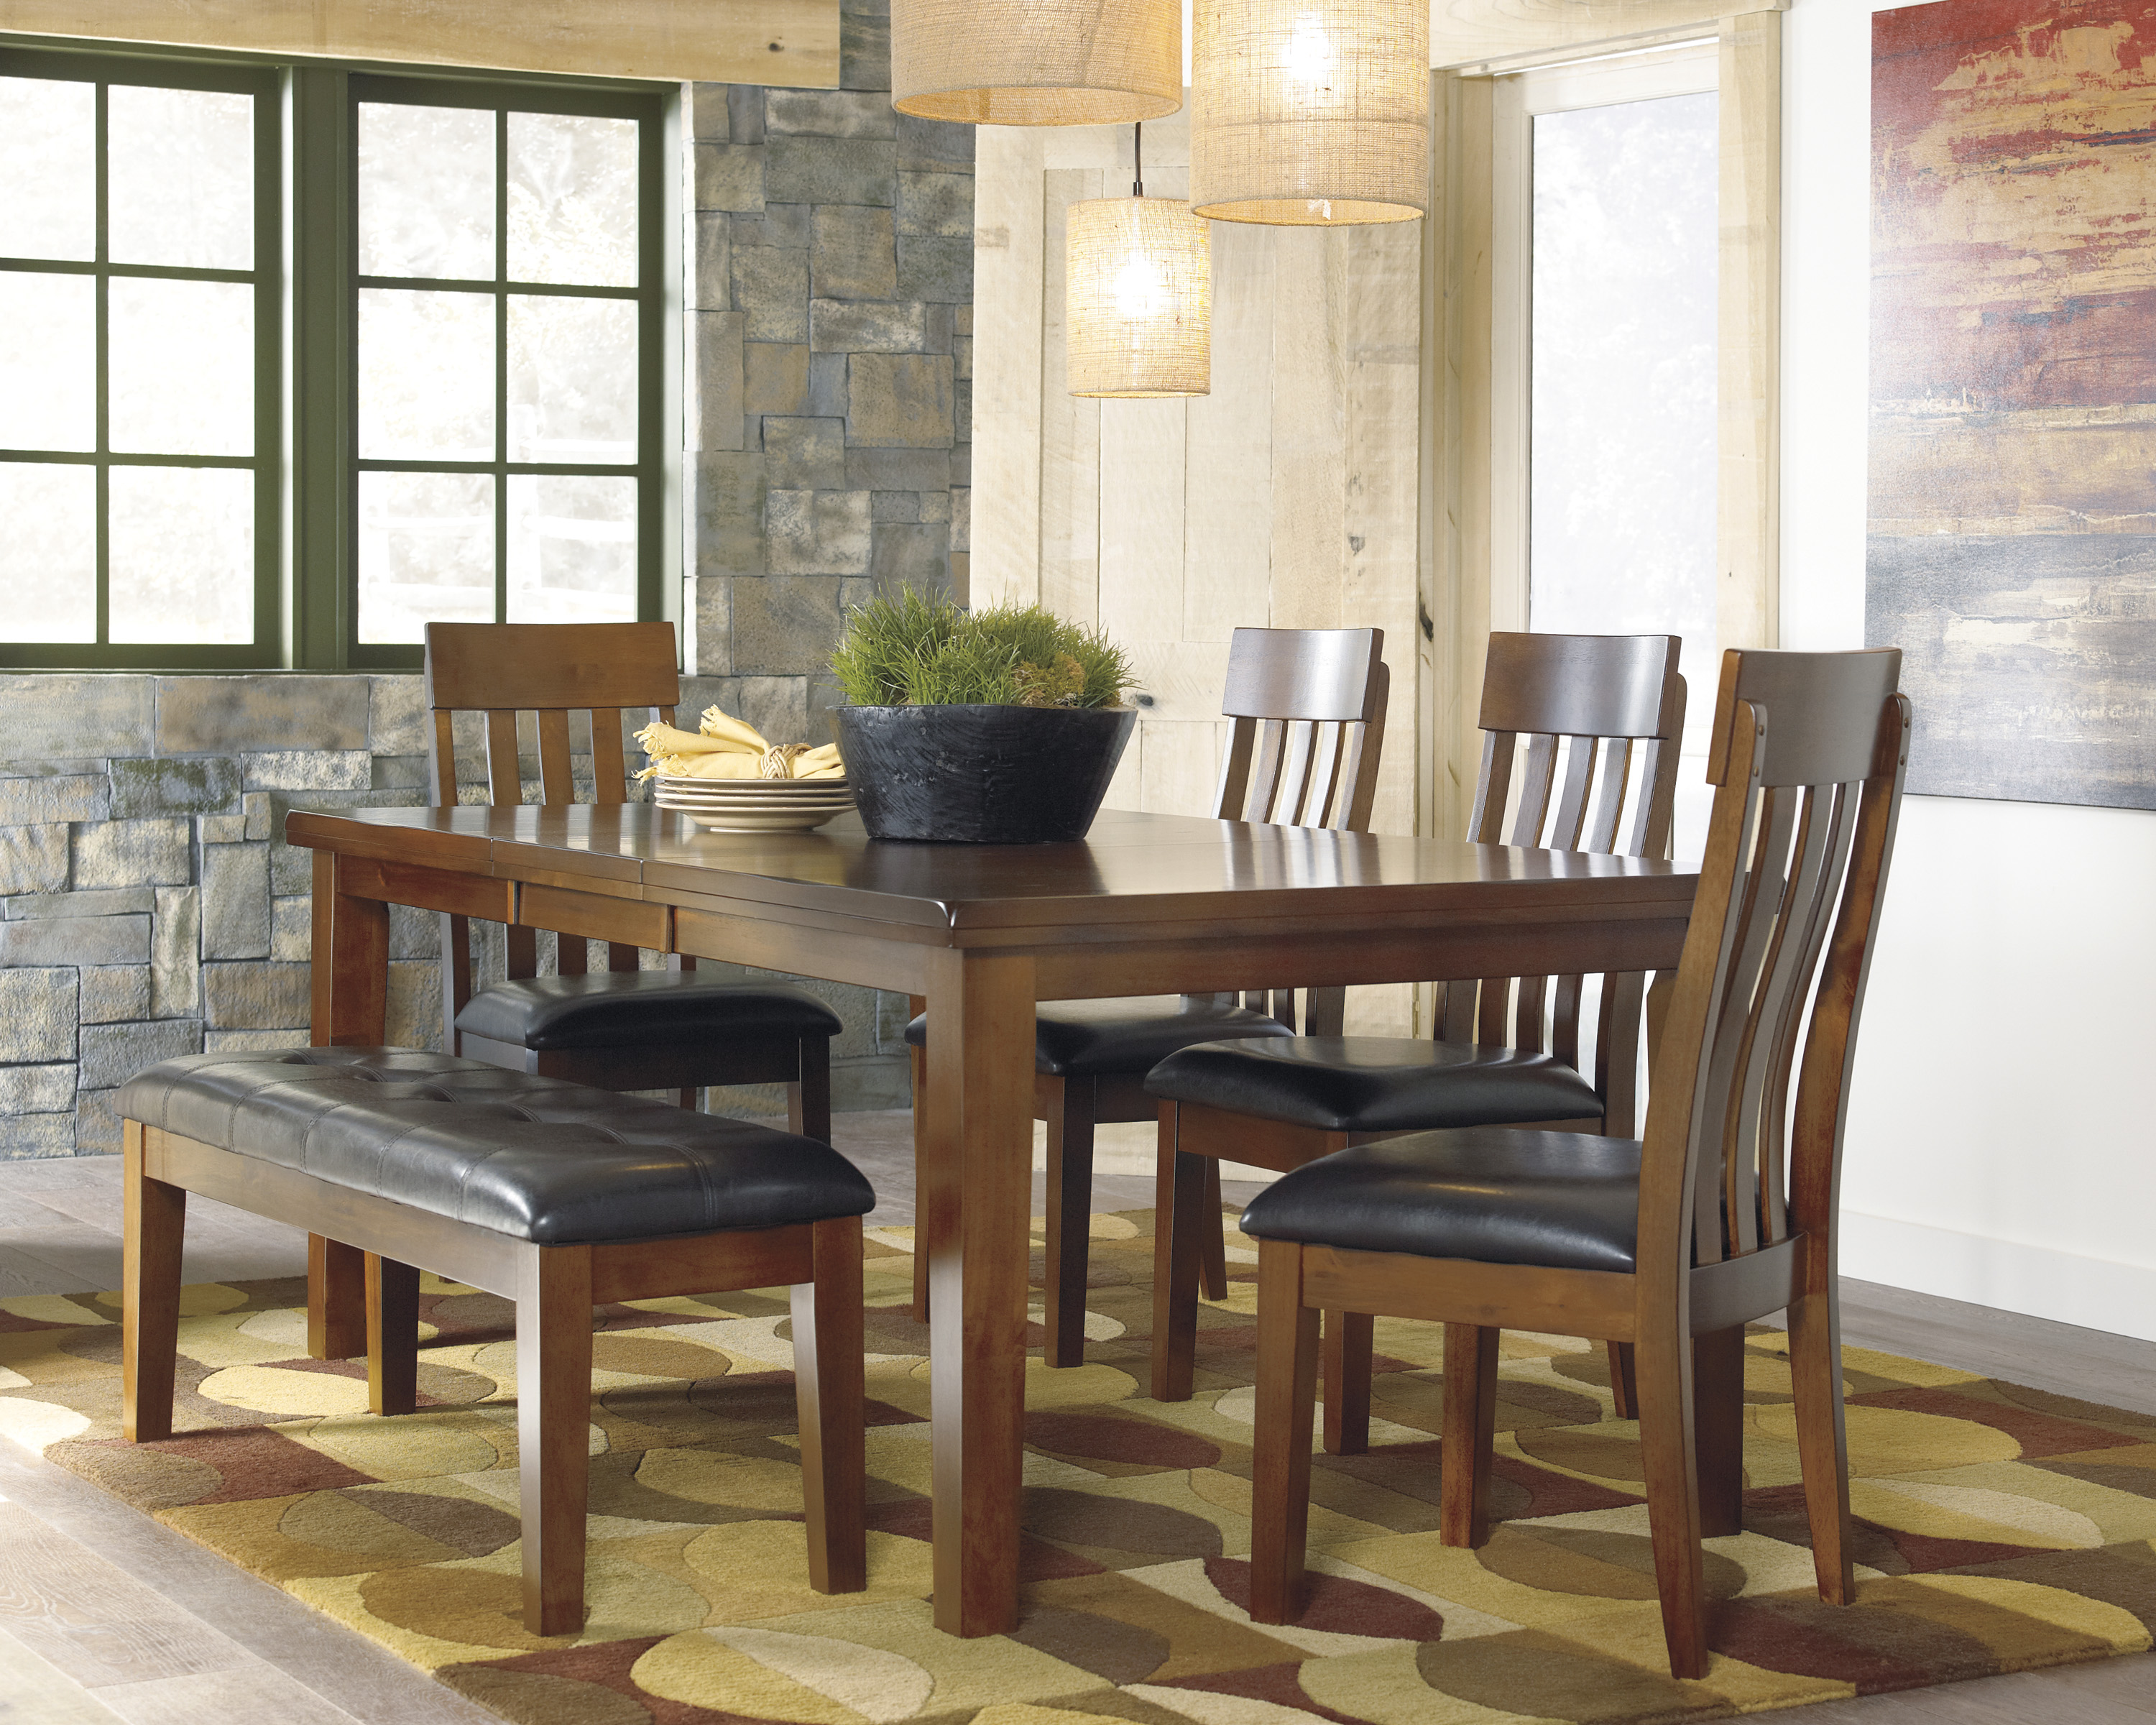 Ashley d594 ralene dining room set - Ashley furniture dining room furniture ...